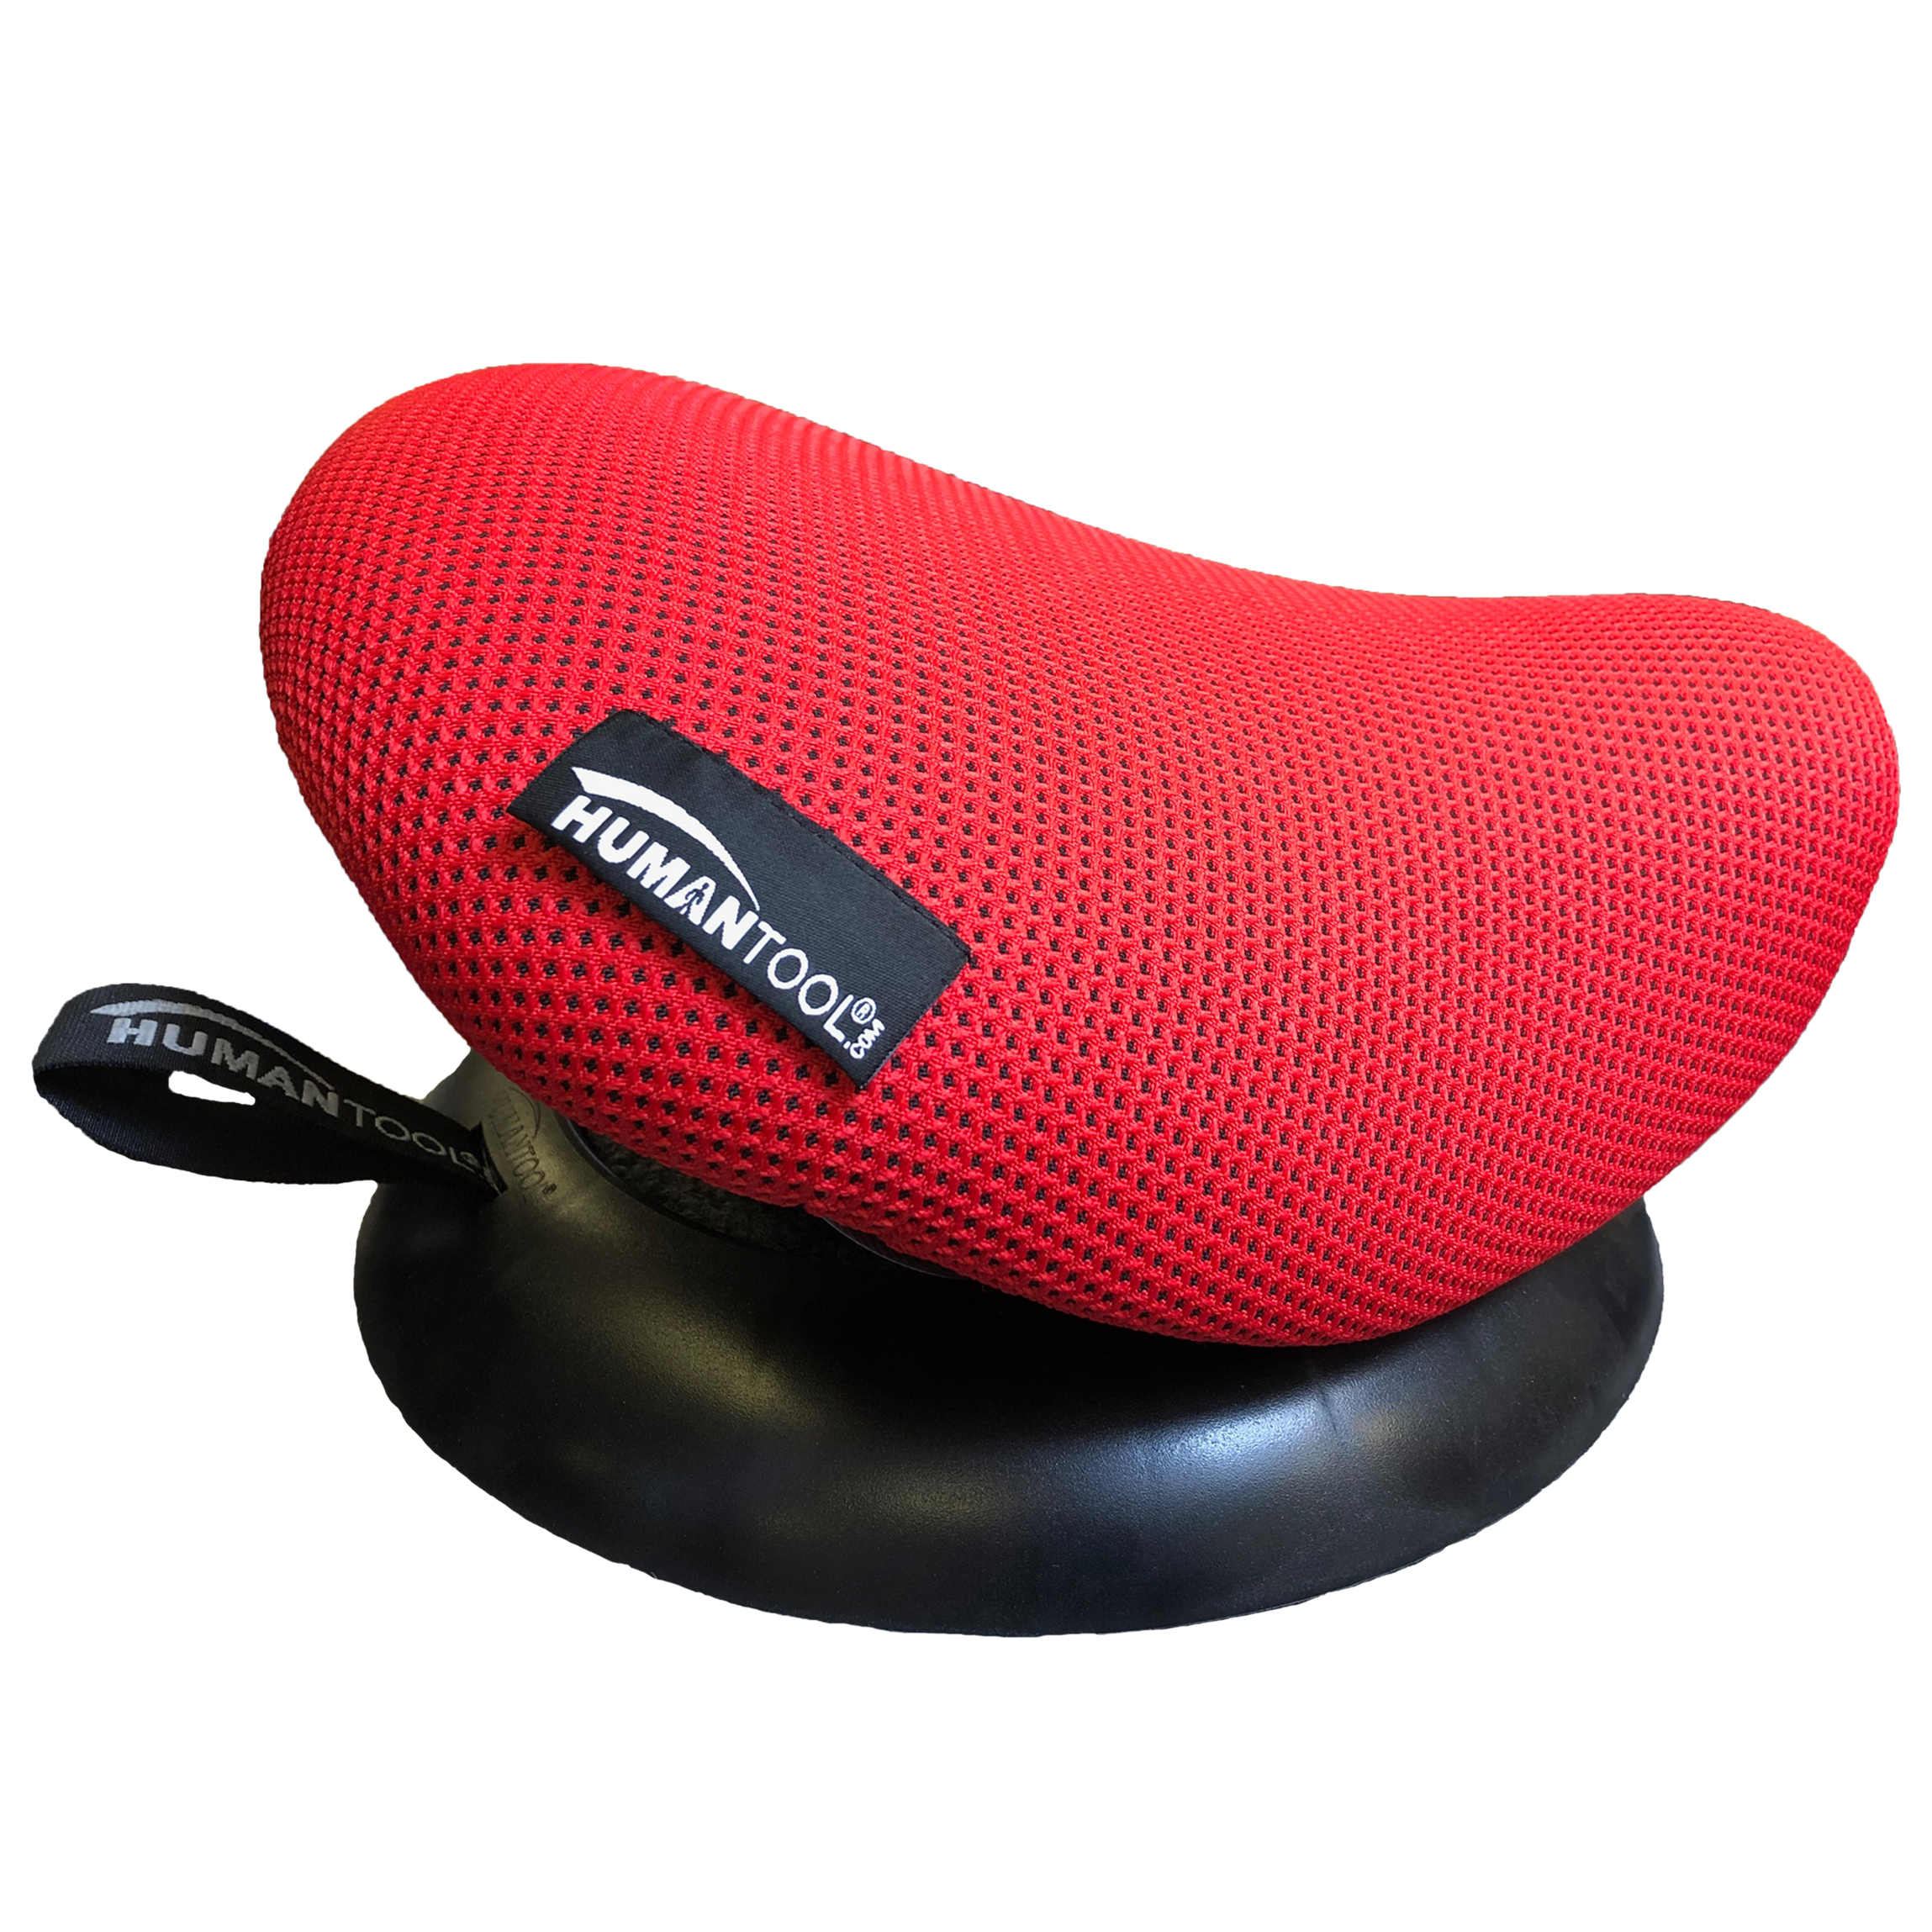 HumanTool Saddle Seat